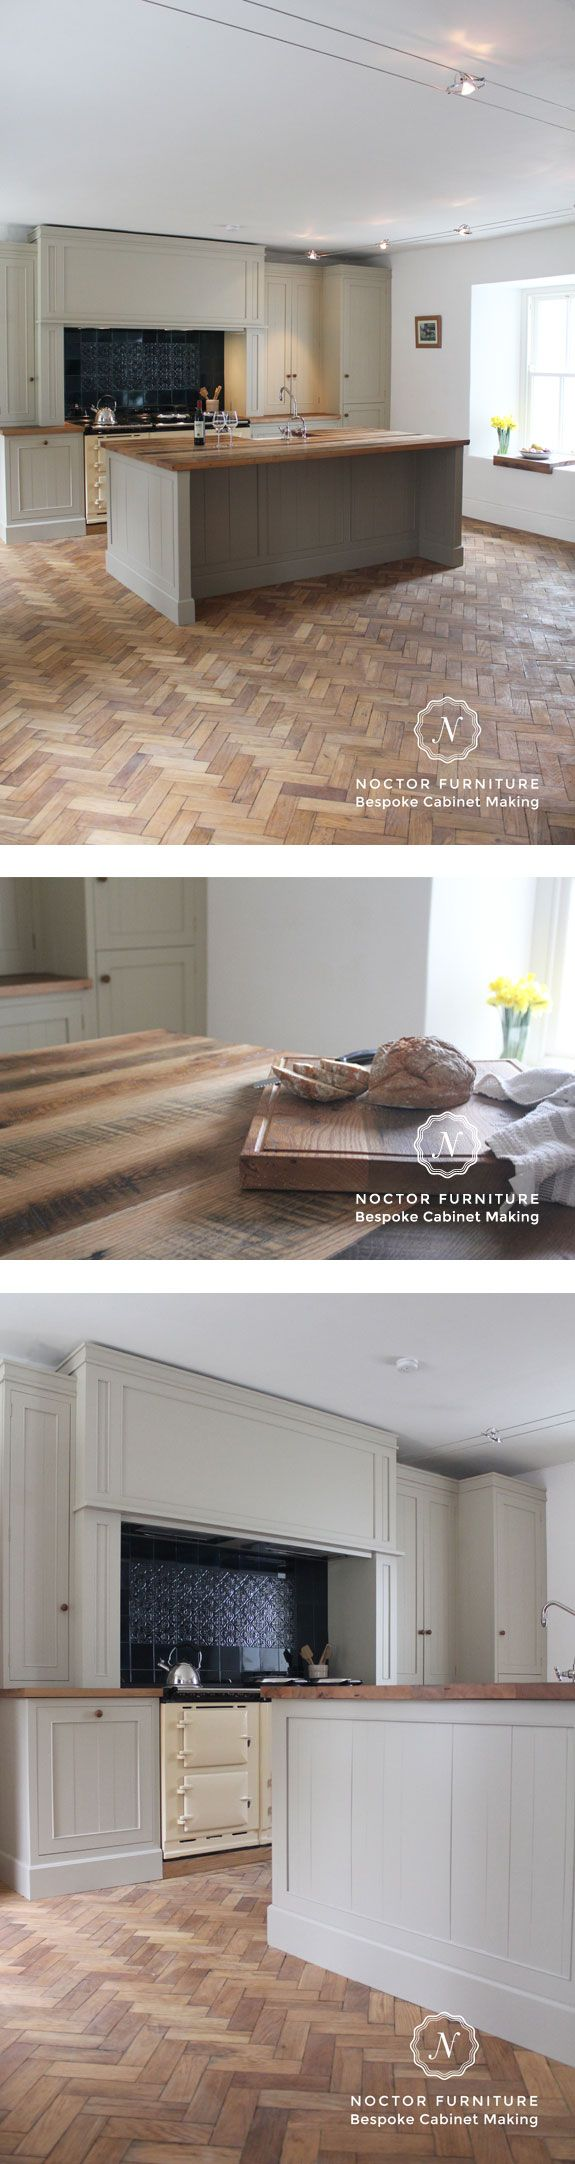 Rustic French | Noctor Furniture